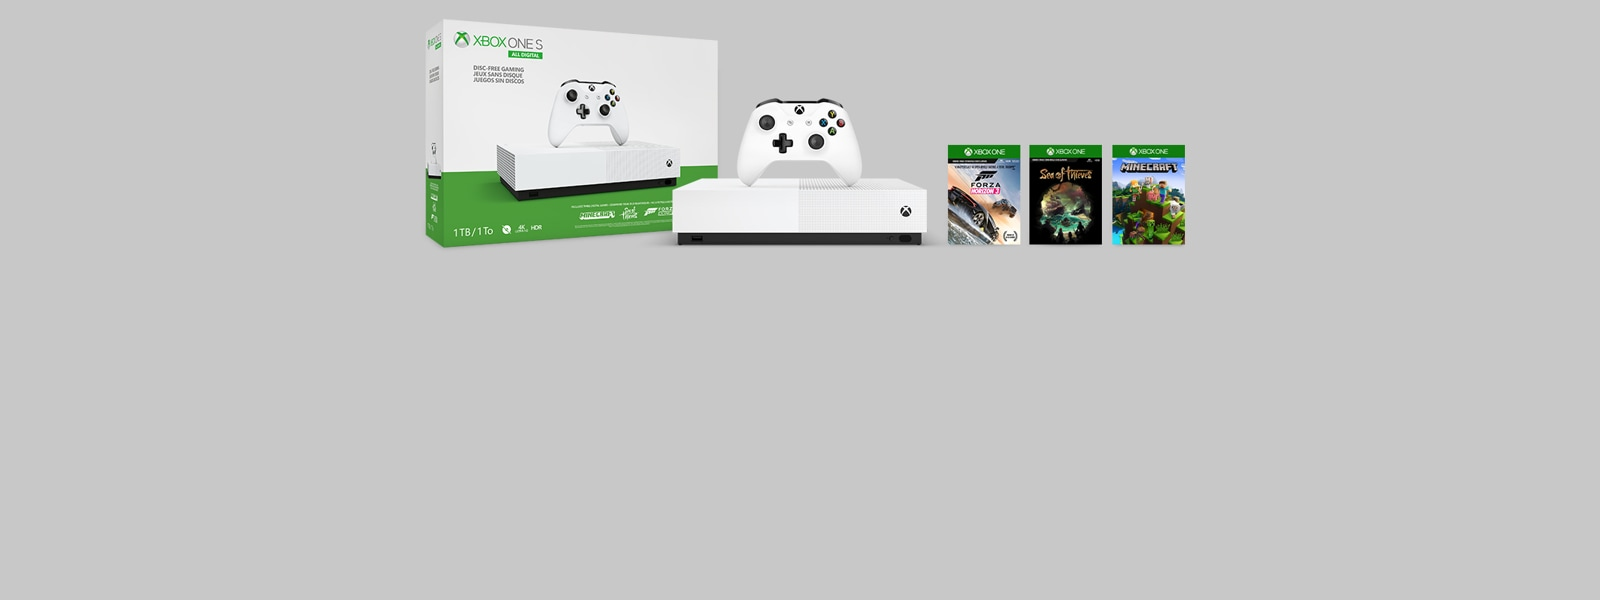 Nova consola Xbox One S All-Digital Edition com os títulos dos jogos pré-carregados: Forza Horizon 3, Sea of Thieves, Minecraft